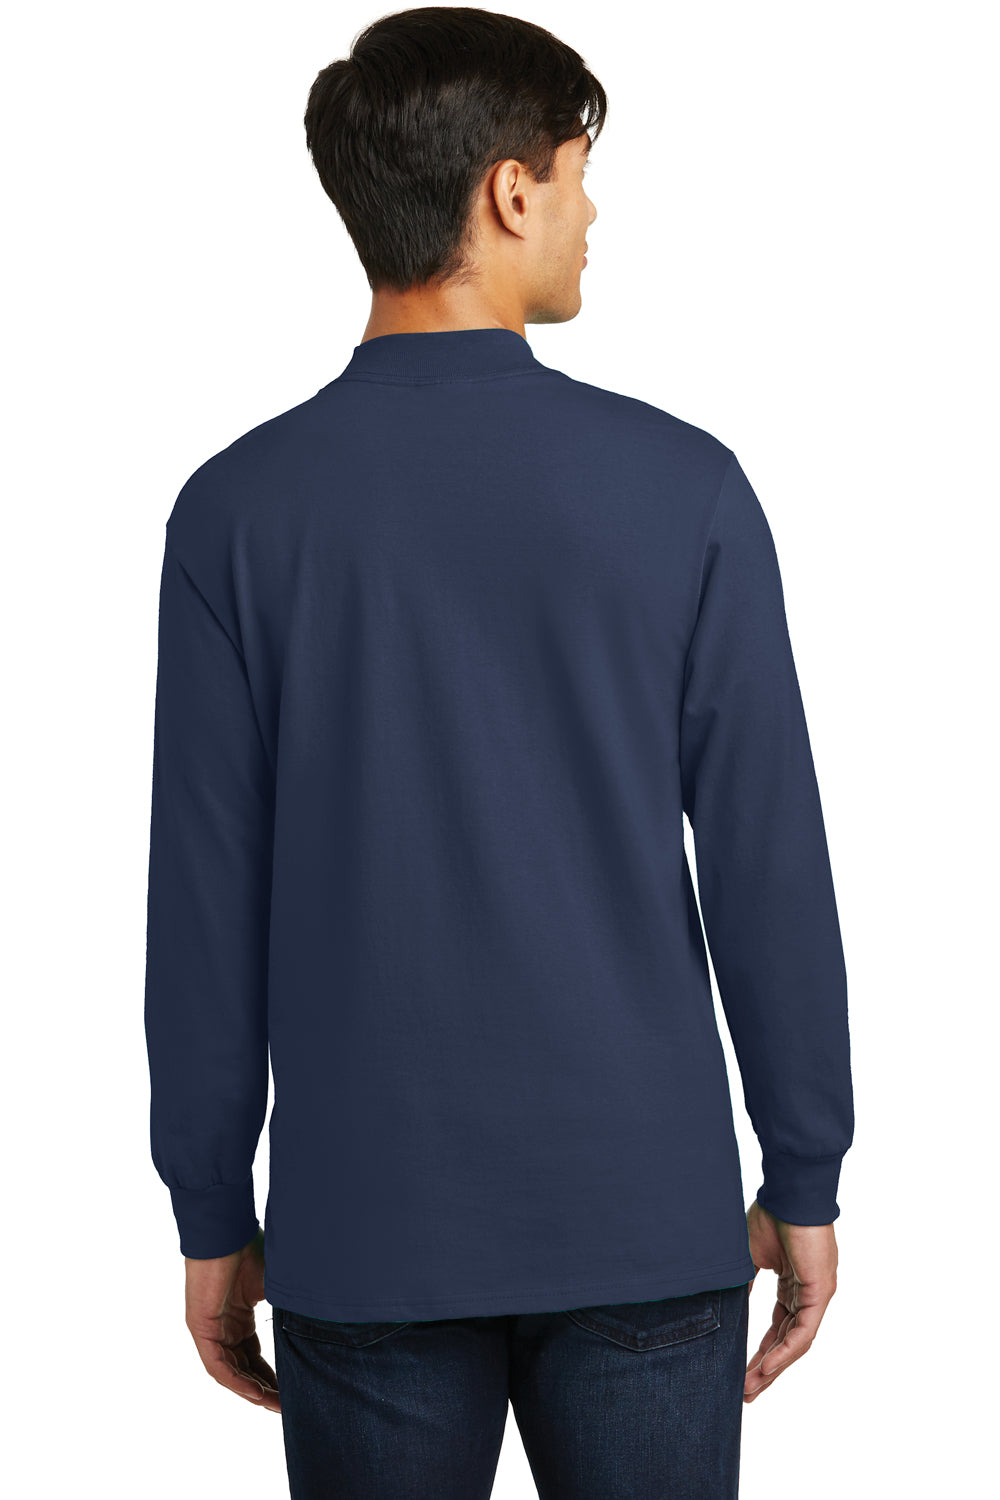 Port & Company PC61M Mens Essential Long Sleeve Mock Neck T-Shirt Navy Blue Back